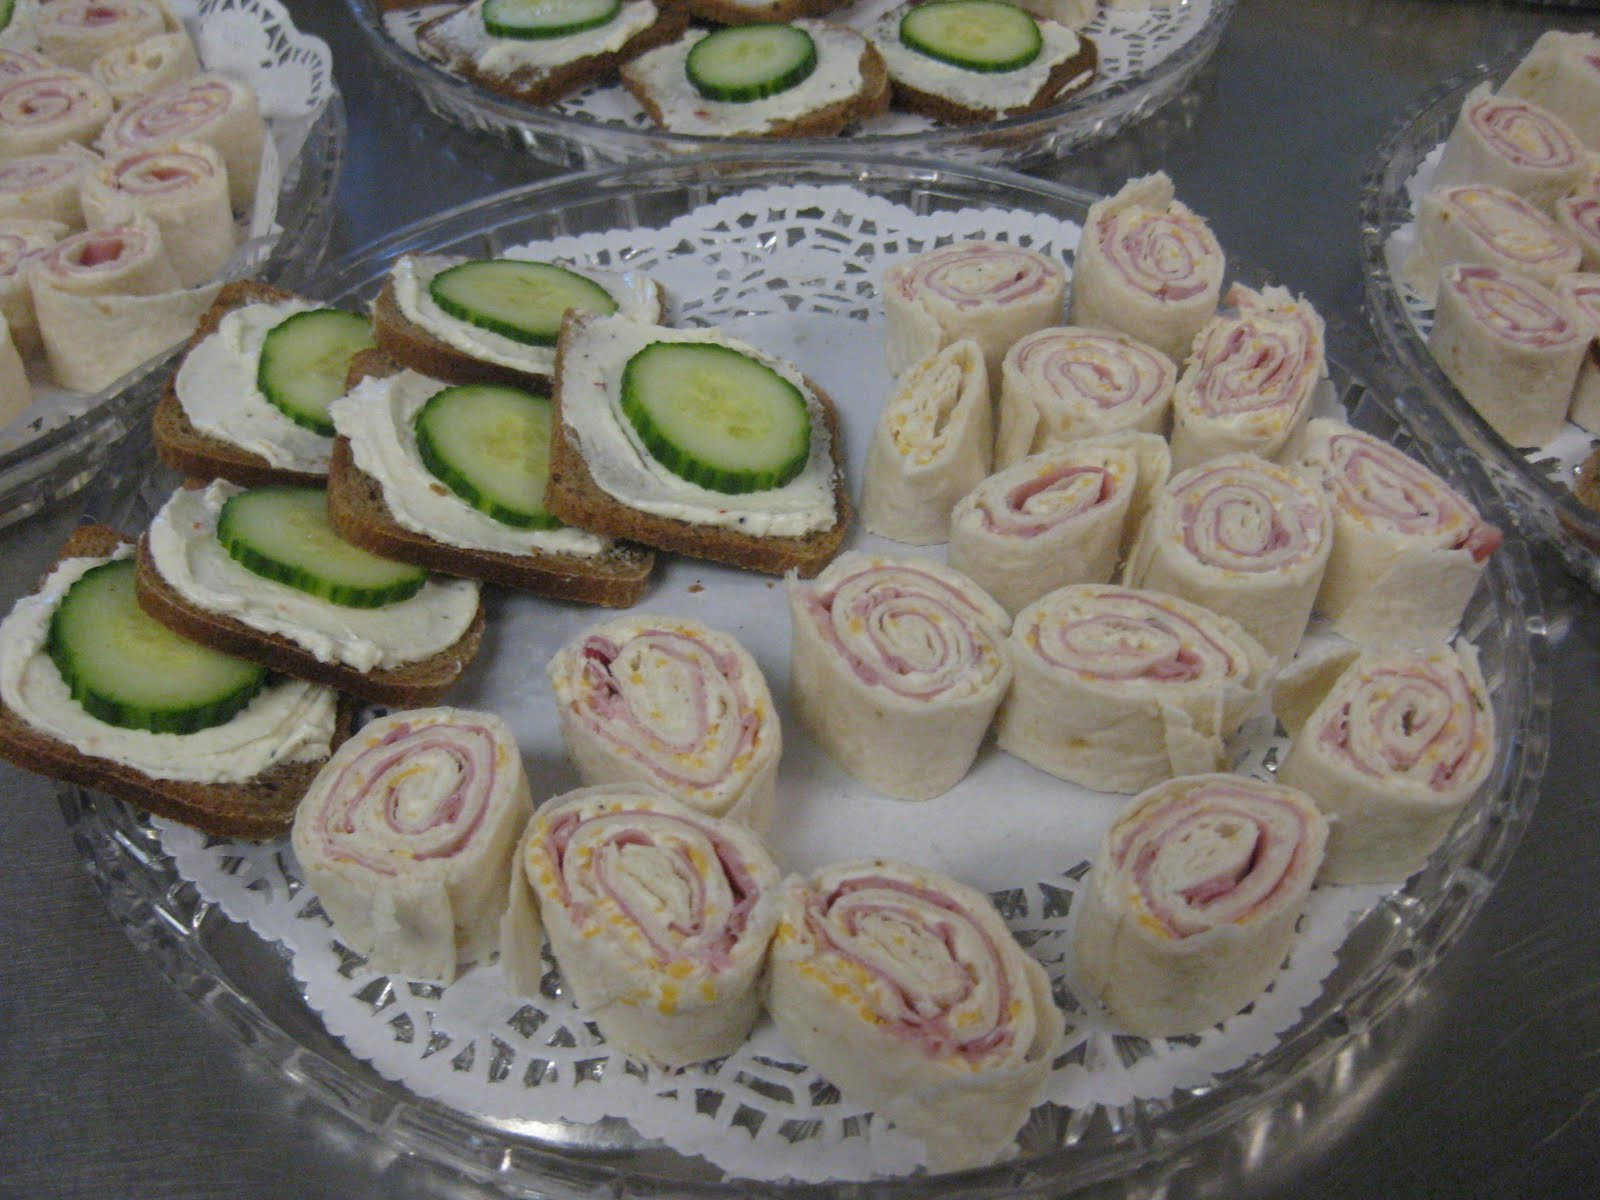 Tea Party Snack Ideas  The Pious Sodality of Church La s Tea Party Food